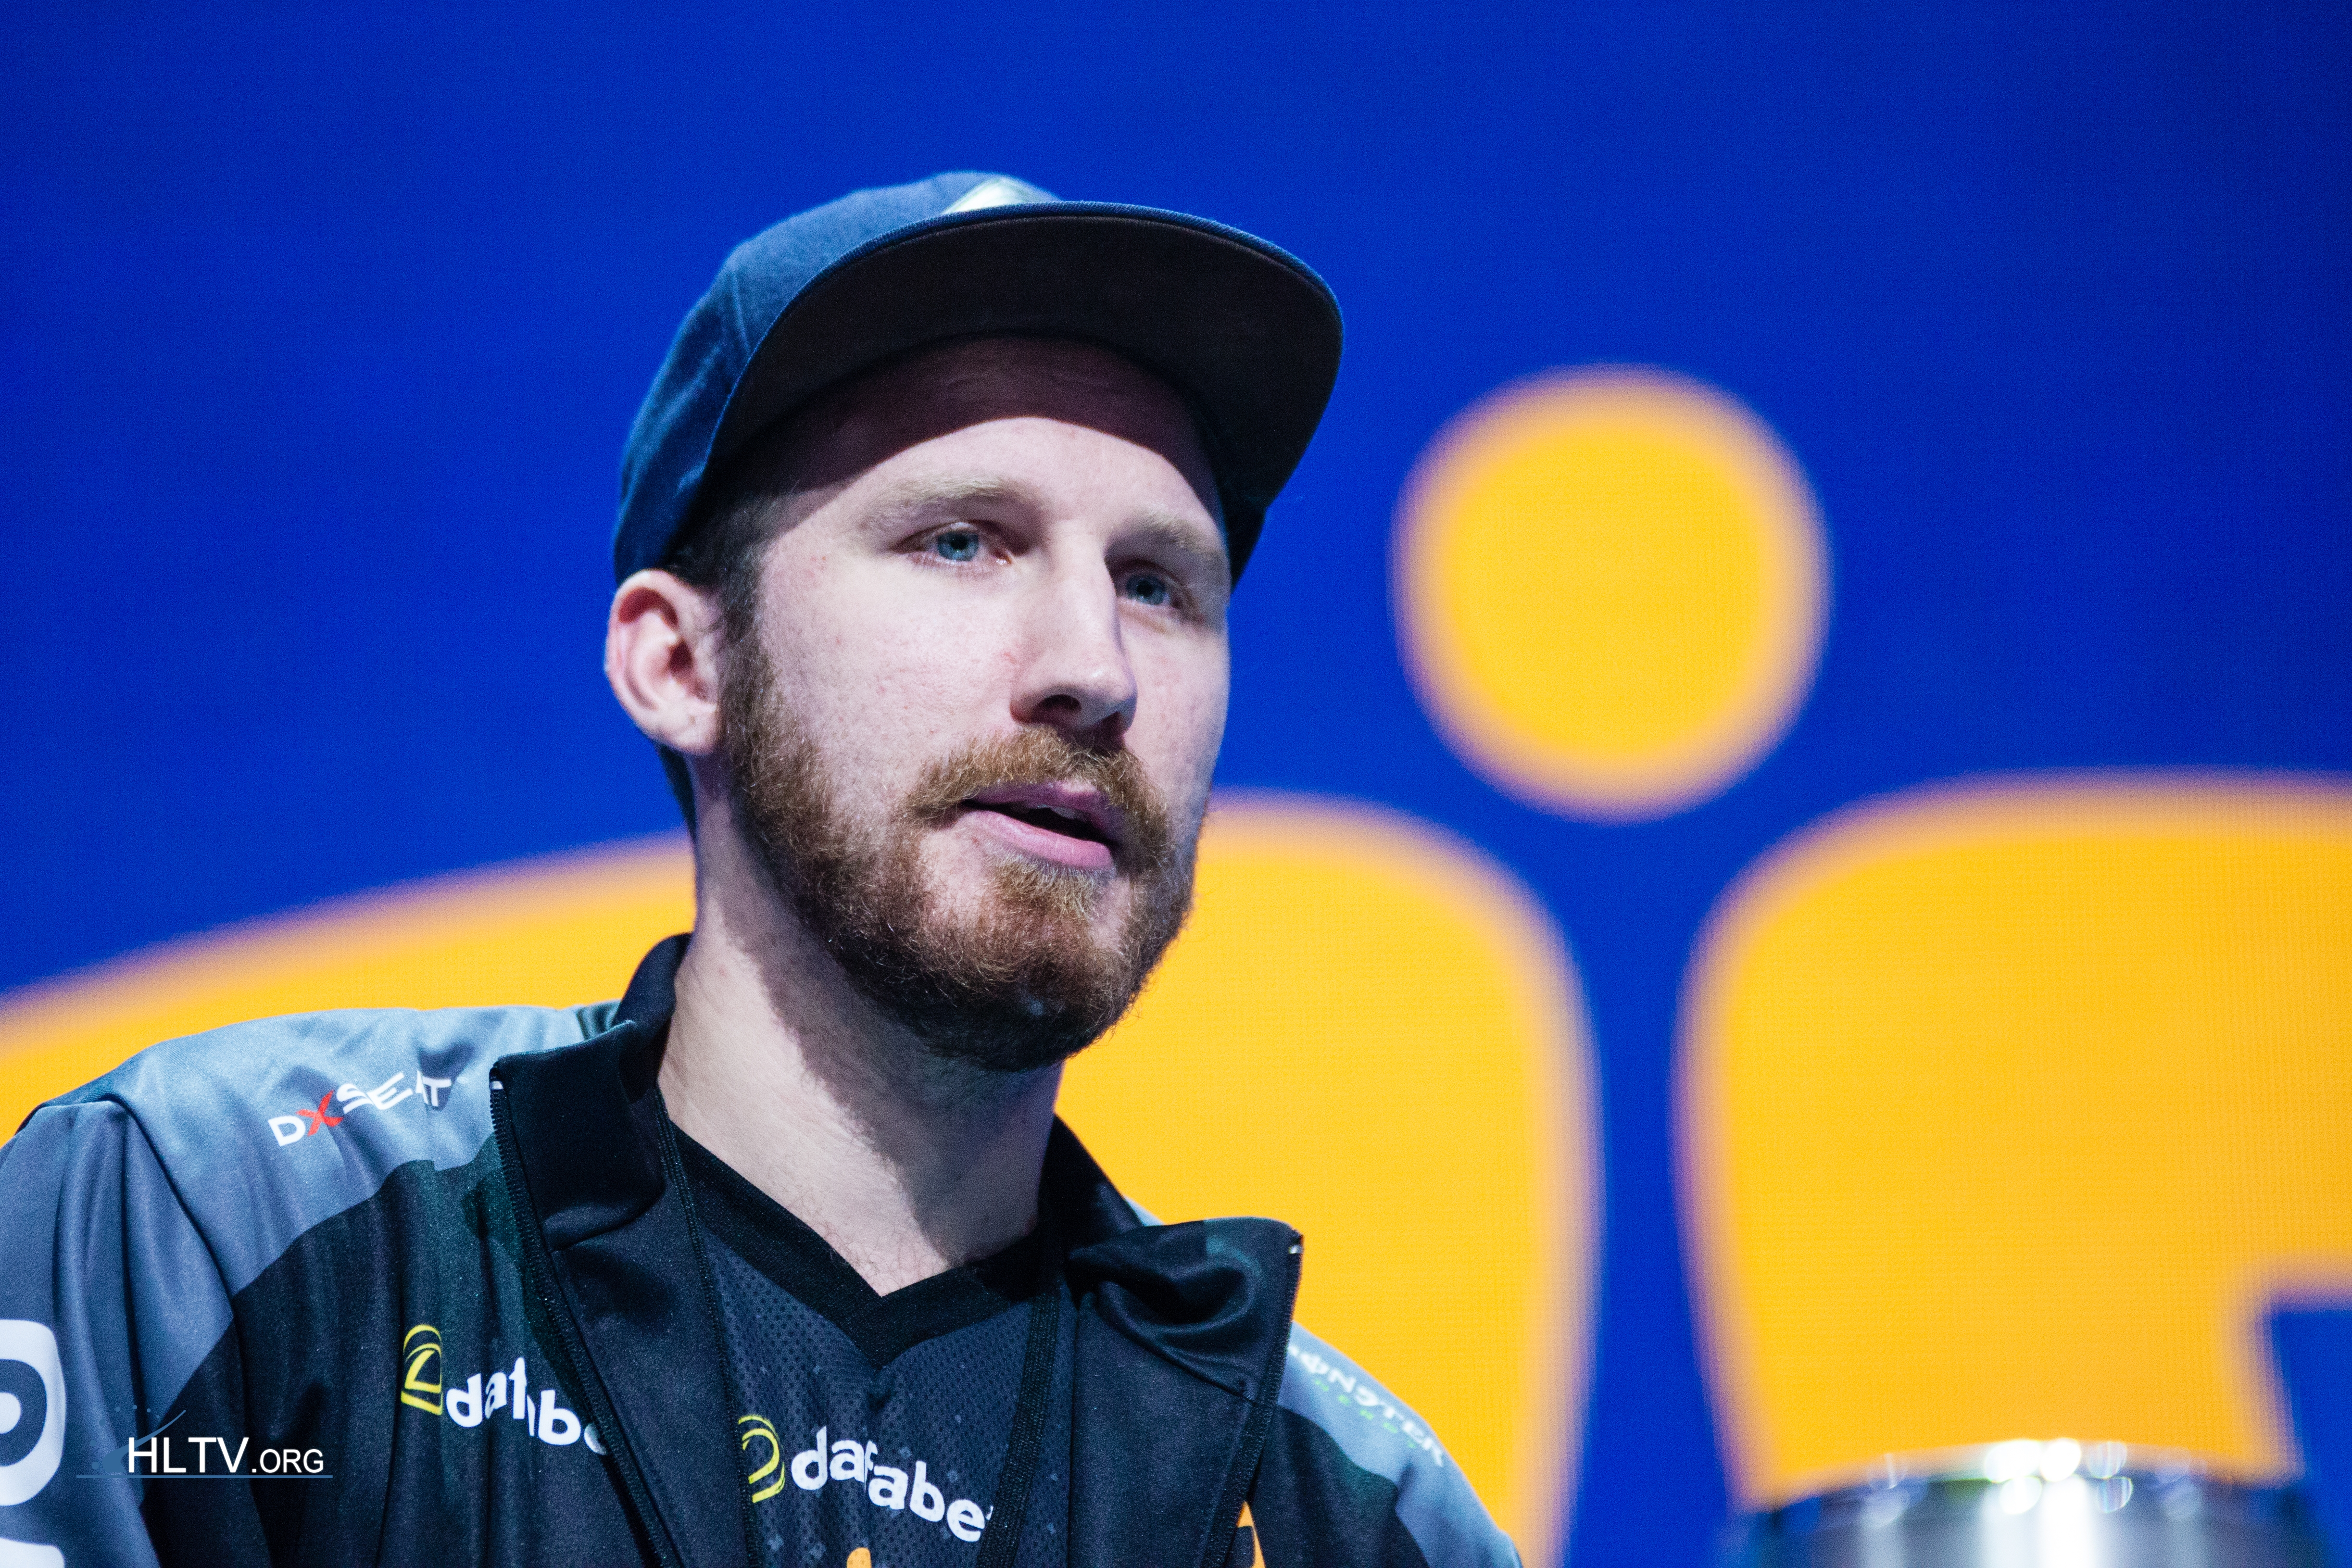 Fnatic's coach Jumpy (Photo by HLTV.org)